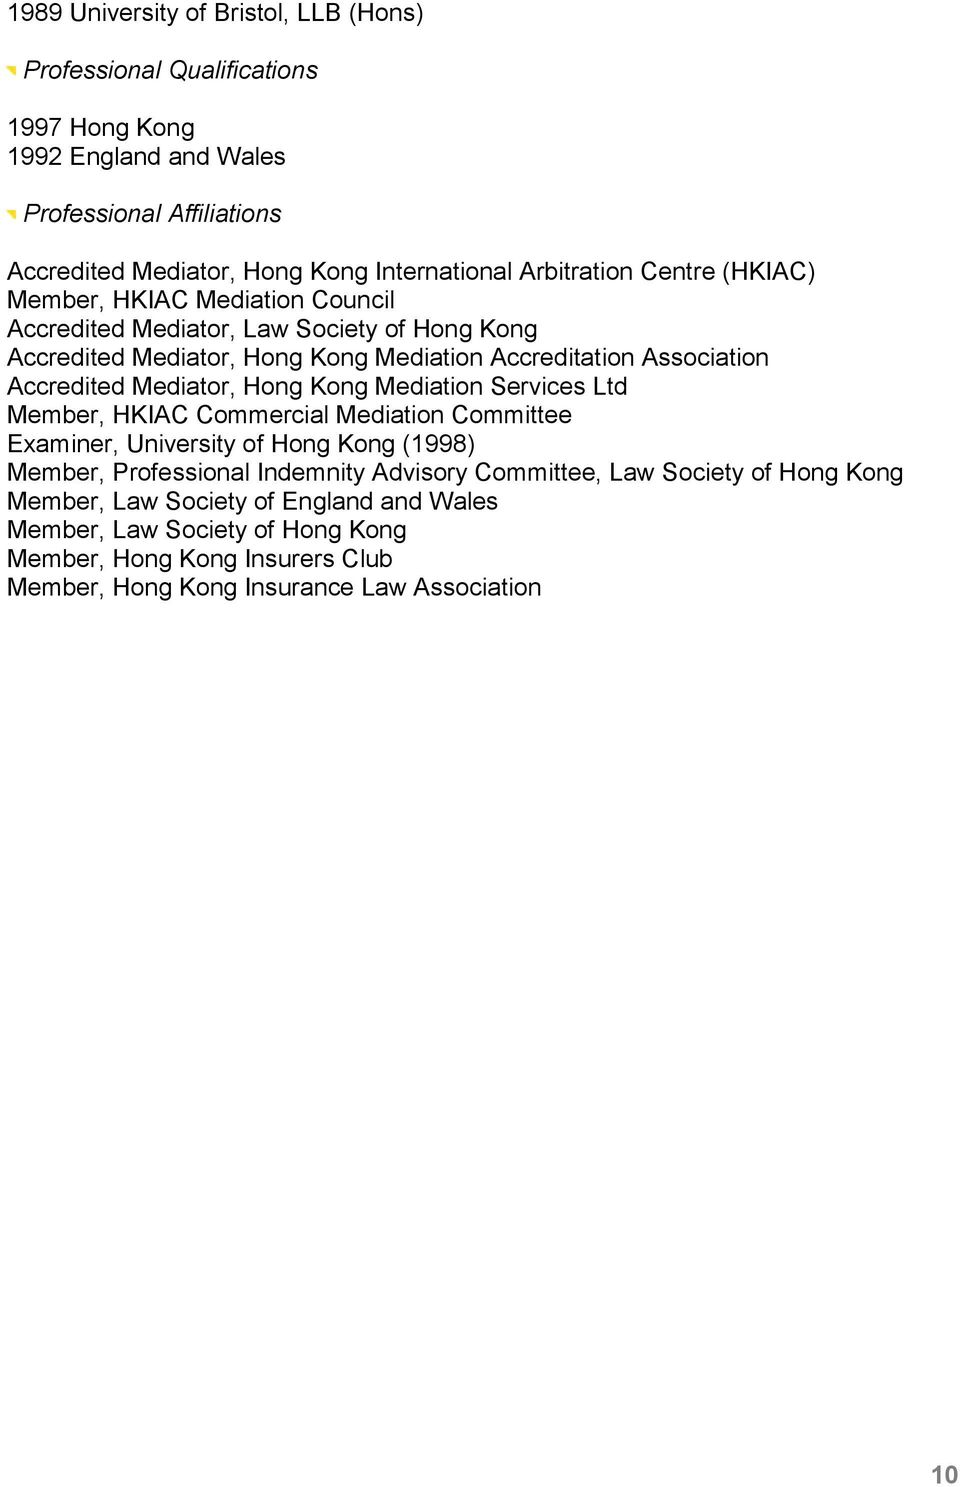 Accredited Mediator, Hong Kong Mediation Services Ltd Member, HKIAC Commercial Mediation Committee Examiner, University of Hong Kong (1998) Member, Professional Indemnity